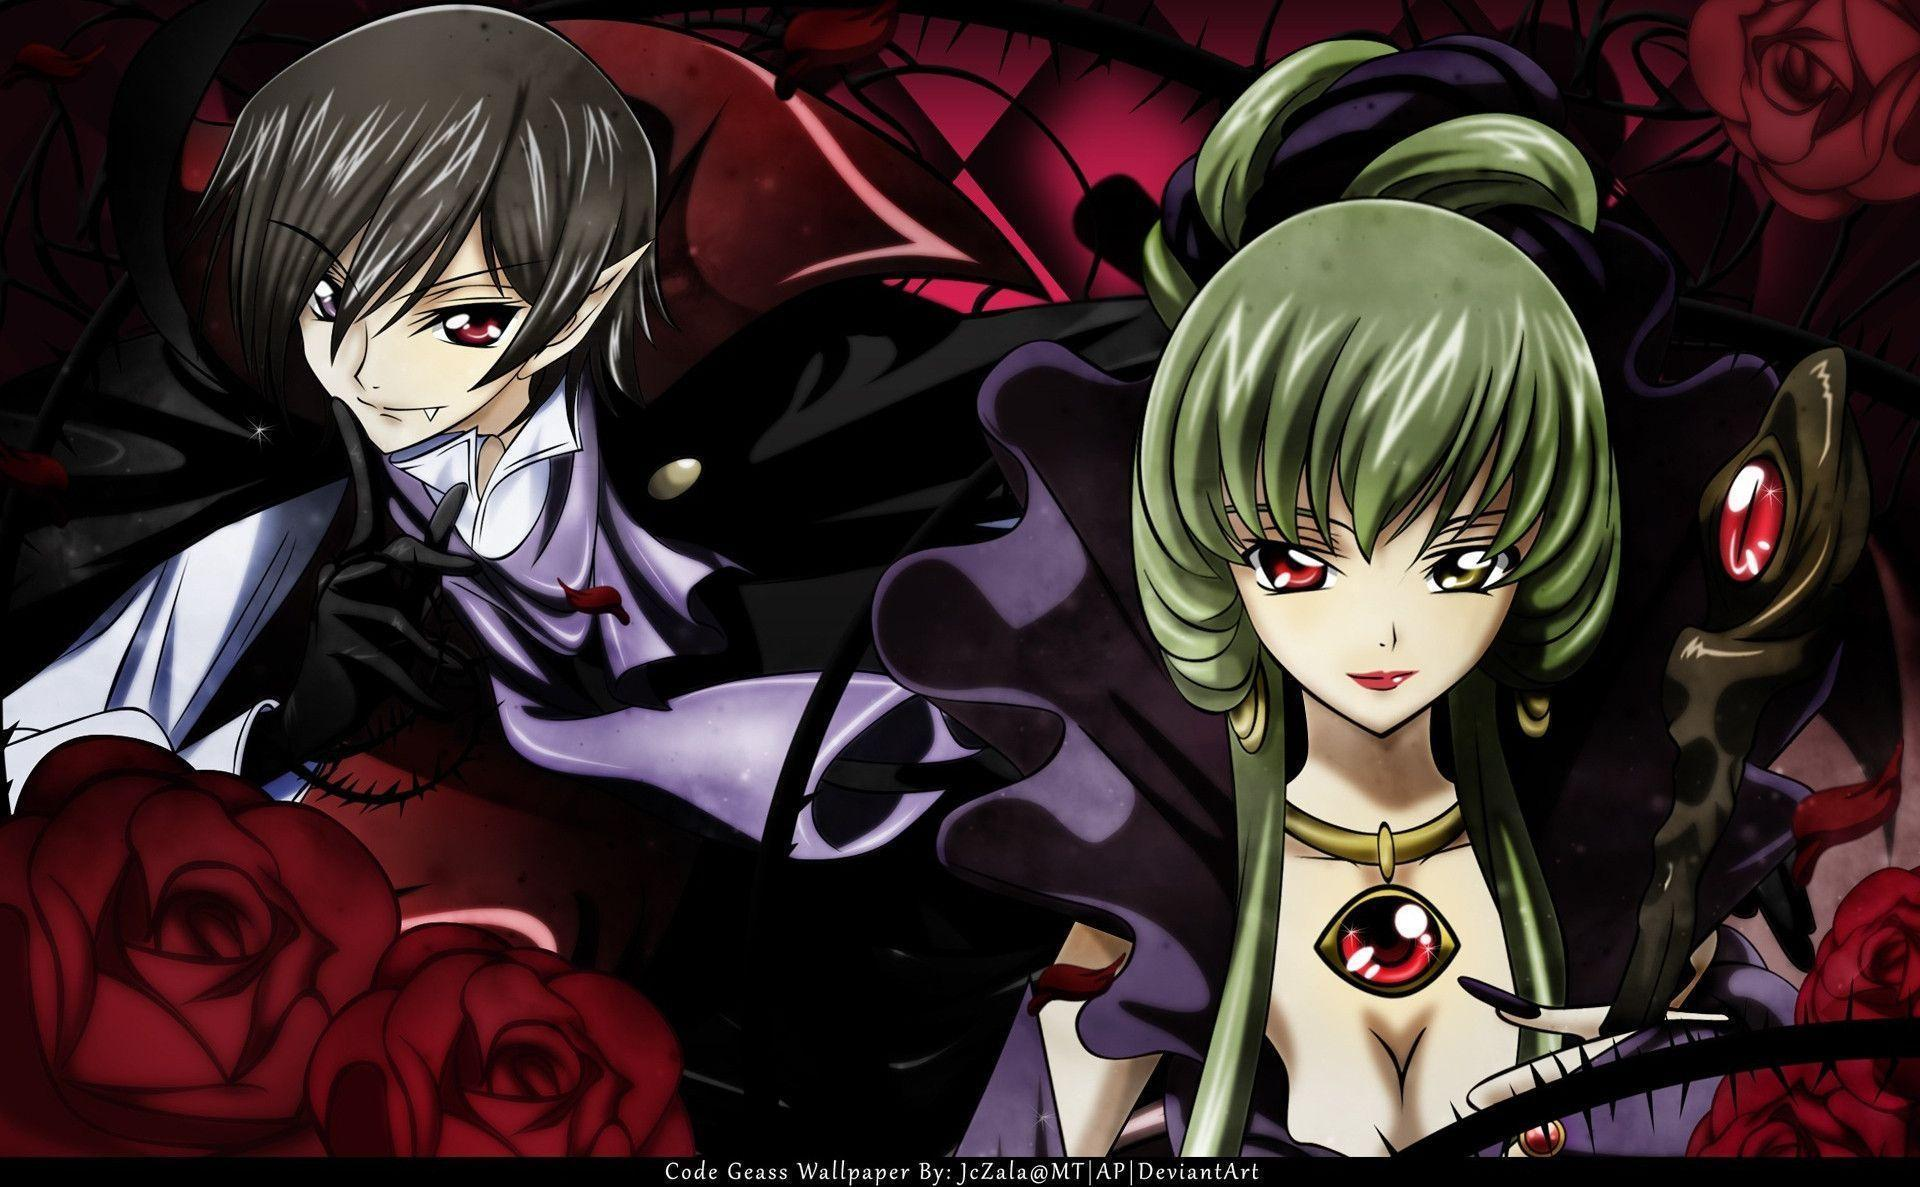 Anime Vampire Wallpapers - Wallpaper Cave